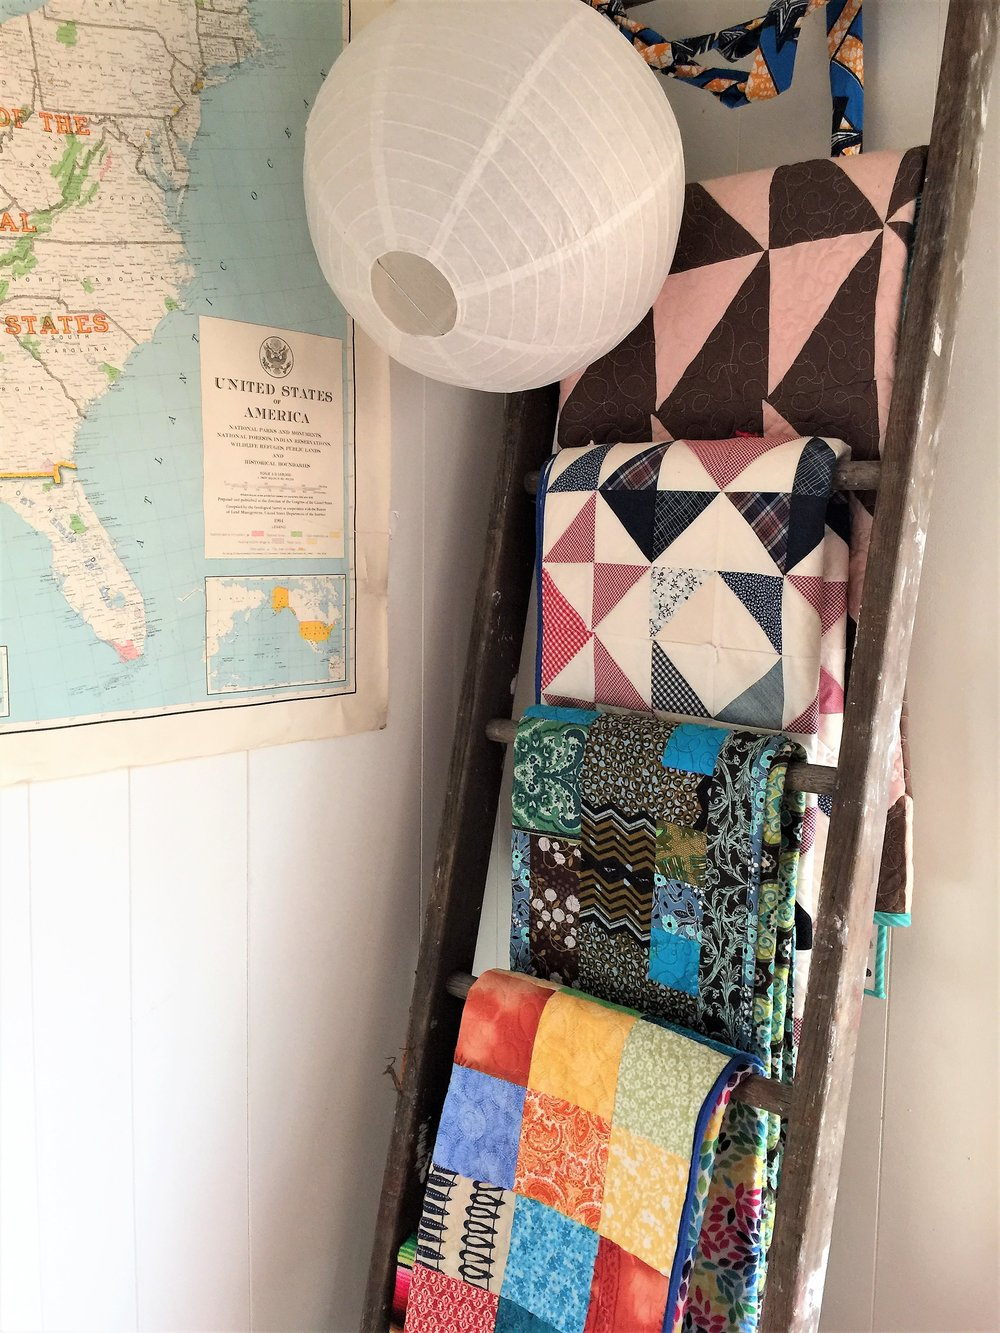 Heirloom Quality Quilts & Goods - Traditional Skills with a Twist, Custom Pieces Available